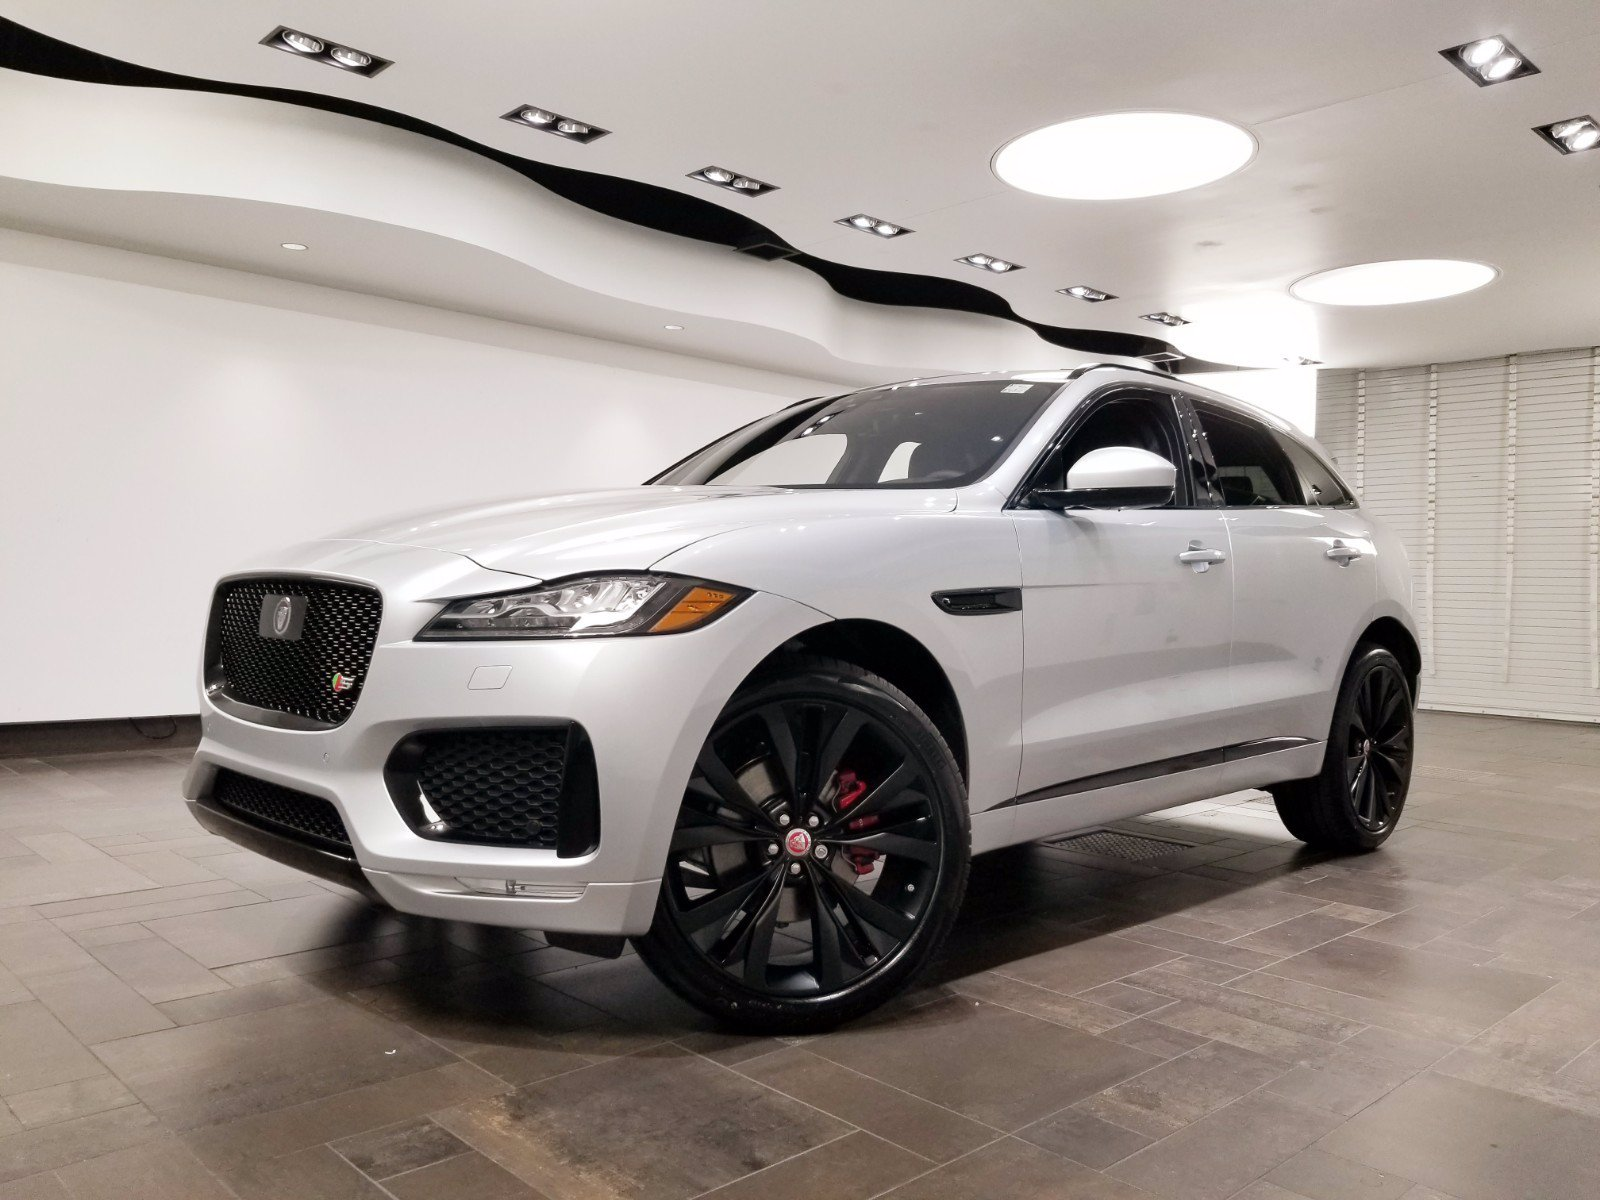 new 2020 jaguar f-pace s suv in west palm beach #j21771